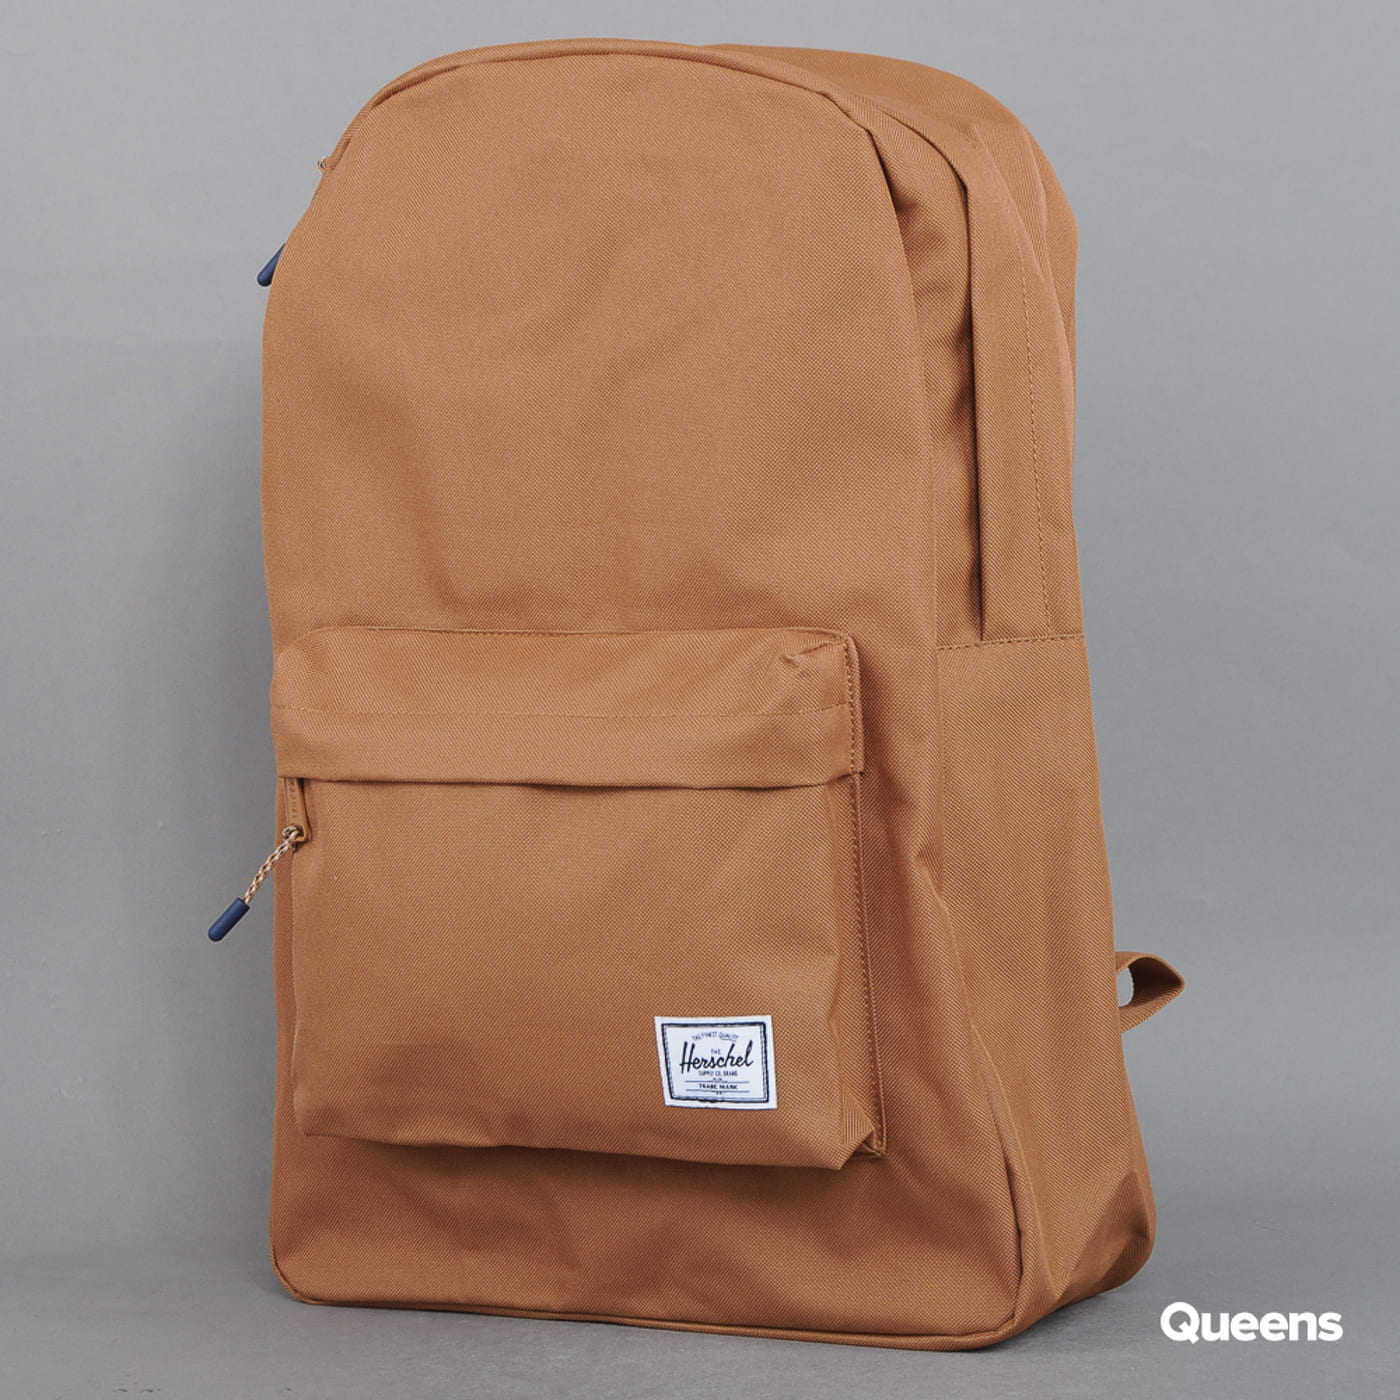 The Herschel Supply CO. Classic Backpack brown